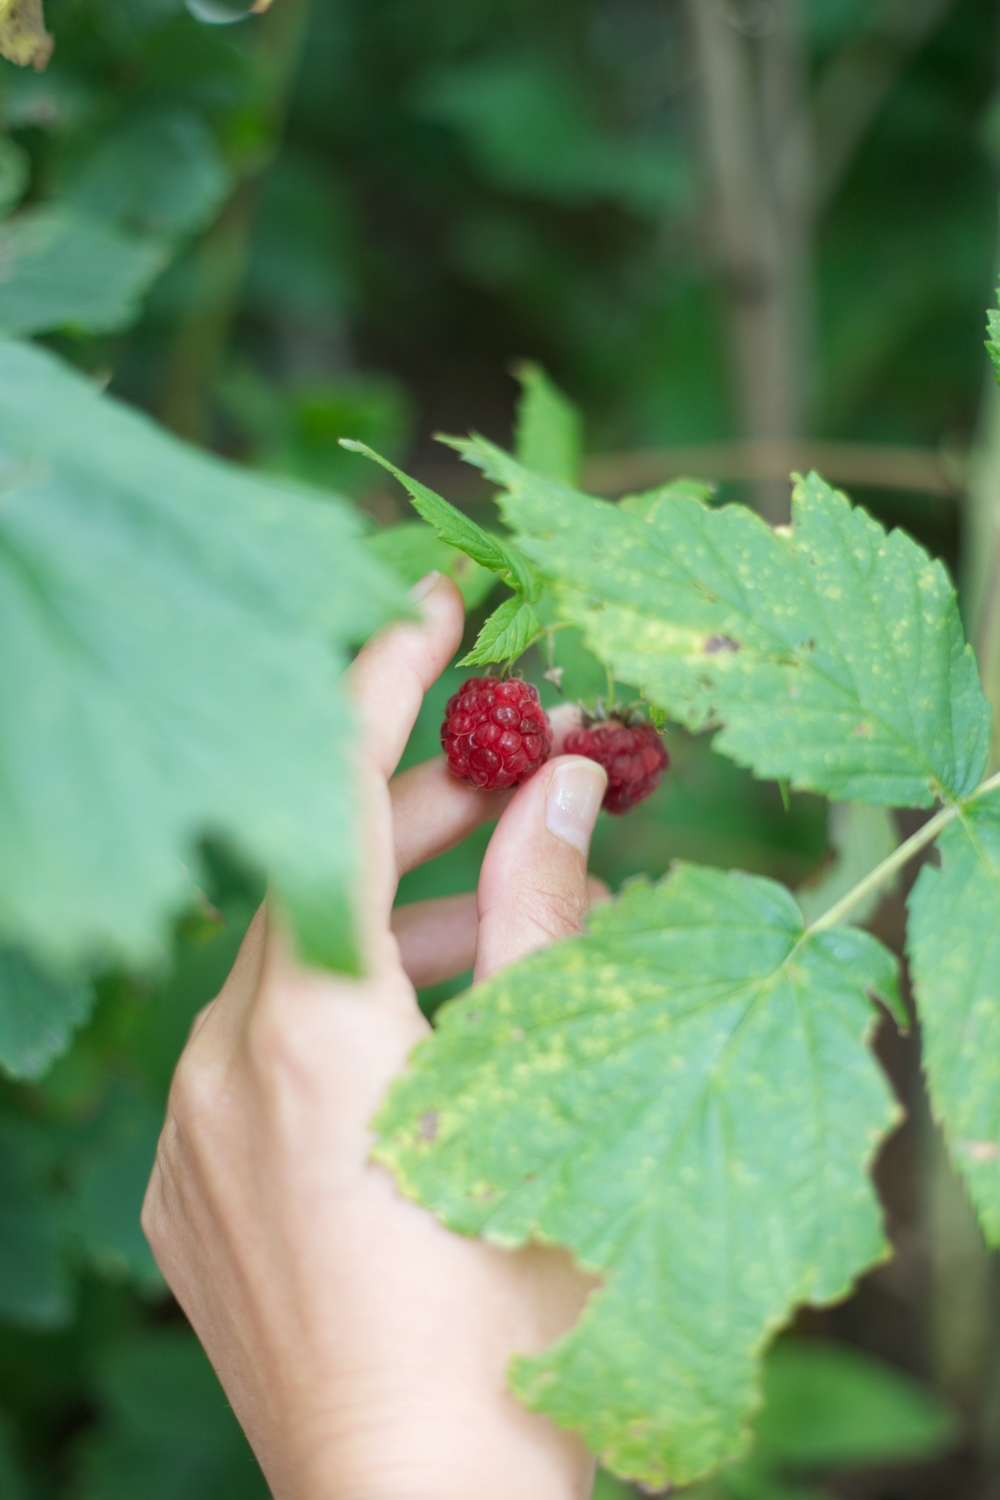 Picking the raspberries when they are ripe.